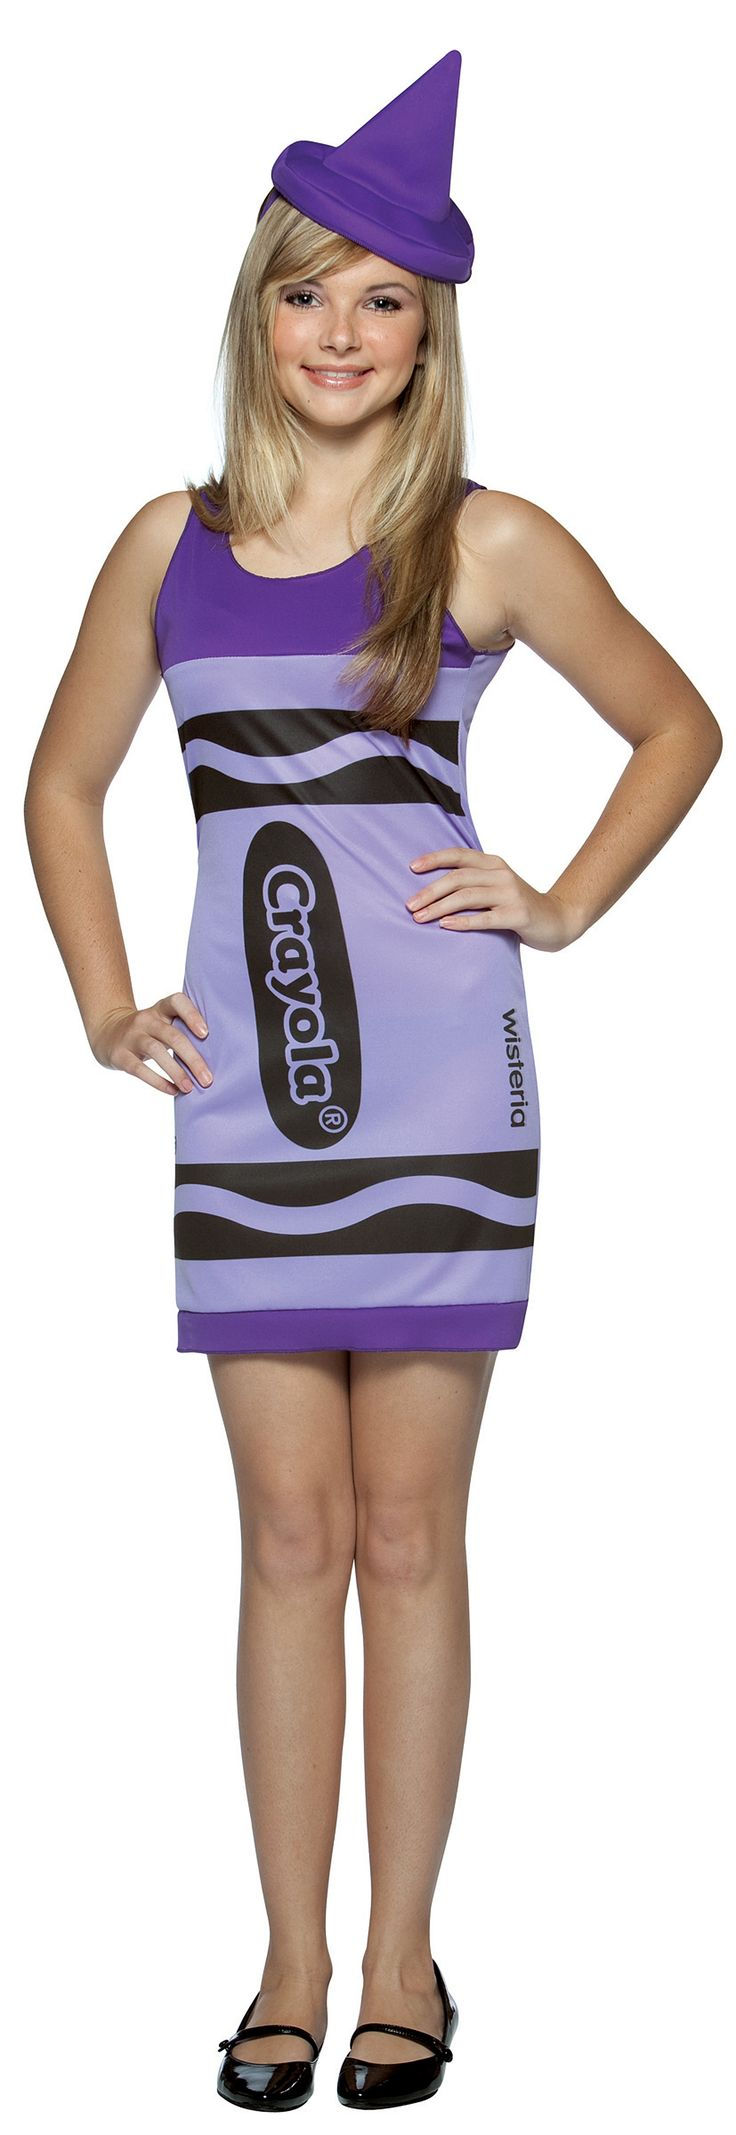 25 best Crayola Crayon Costumes images on Pinterest